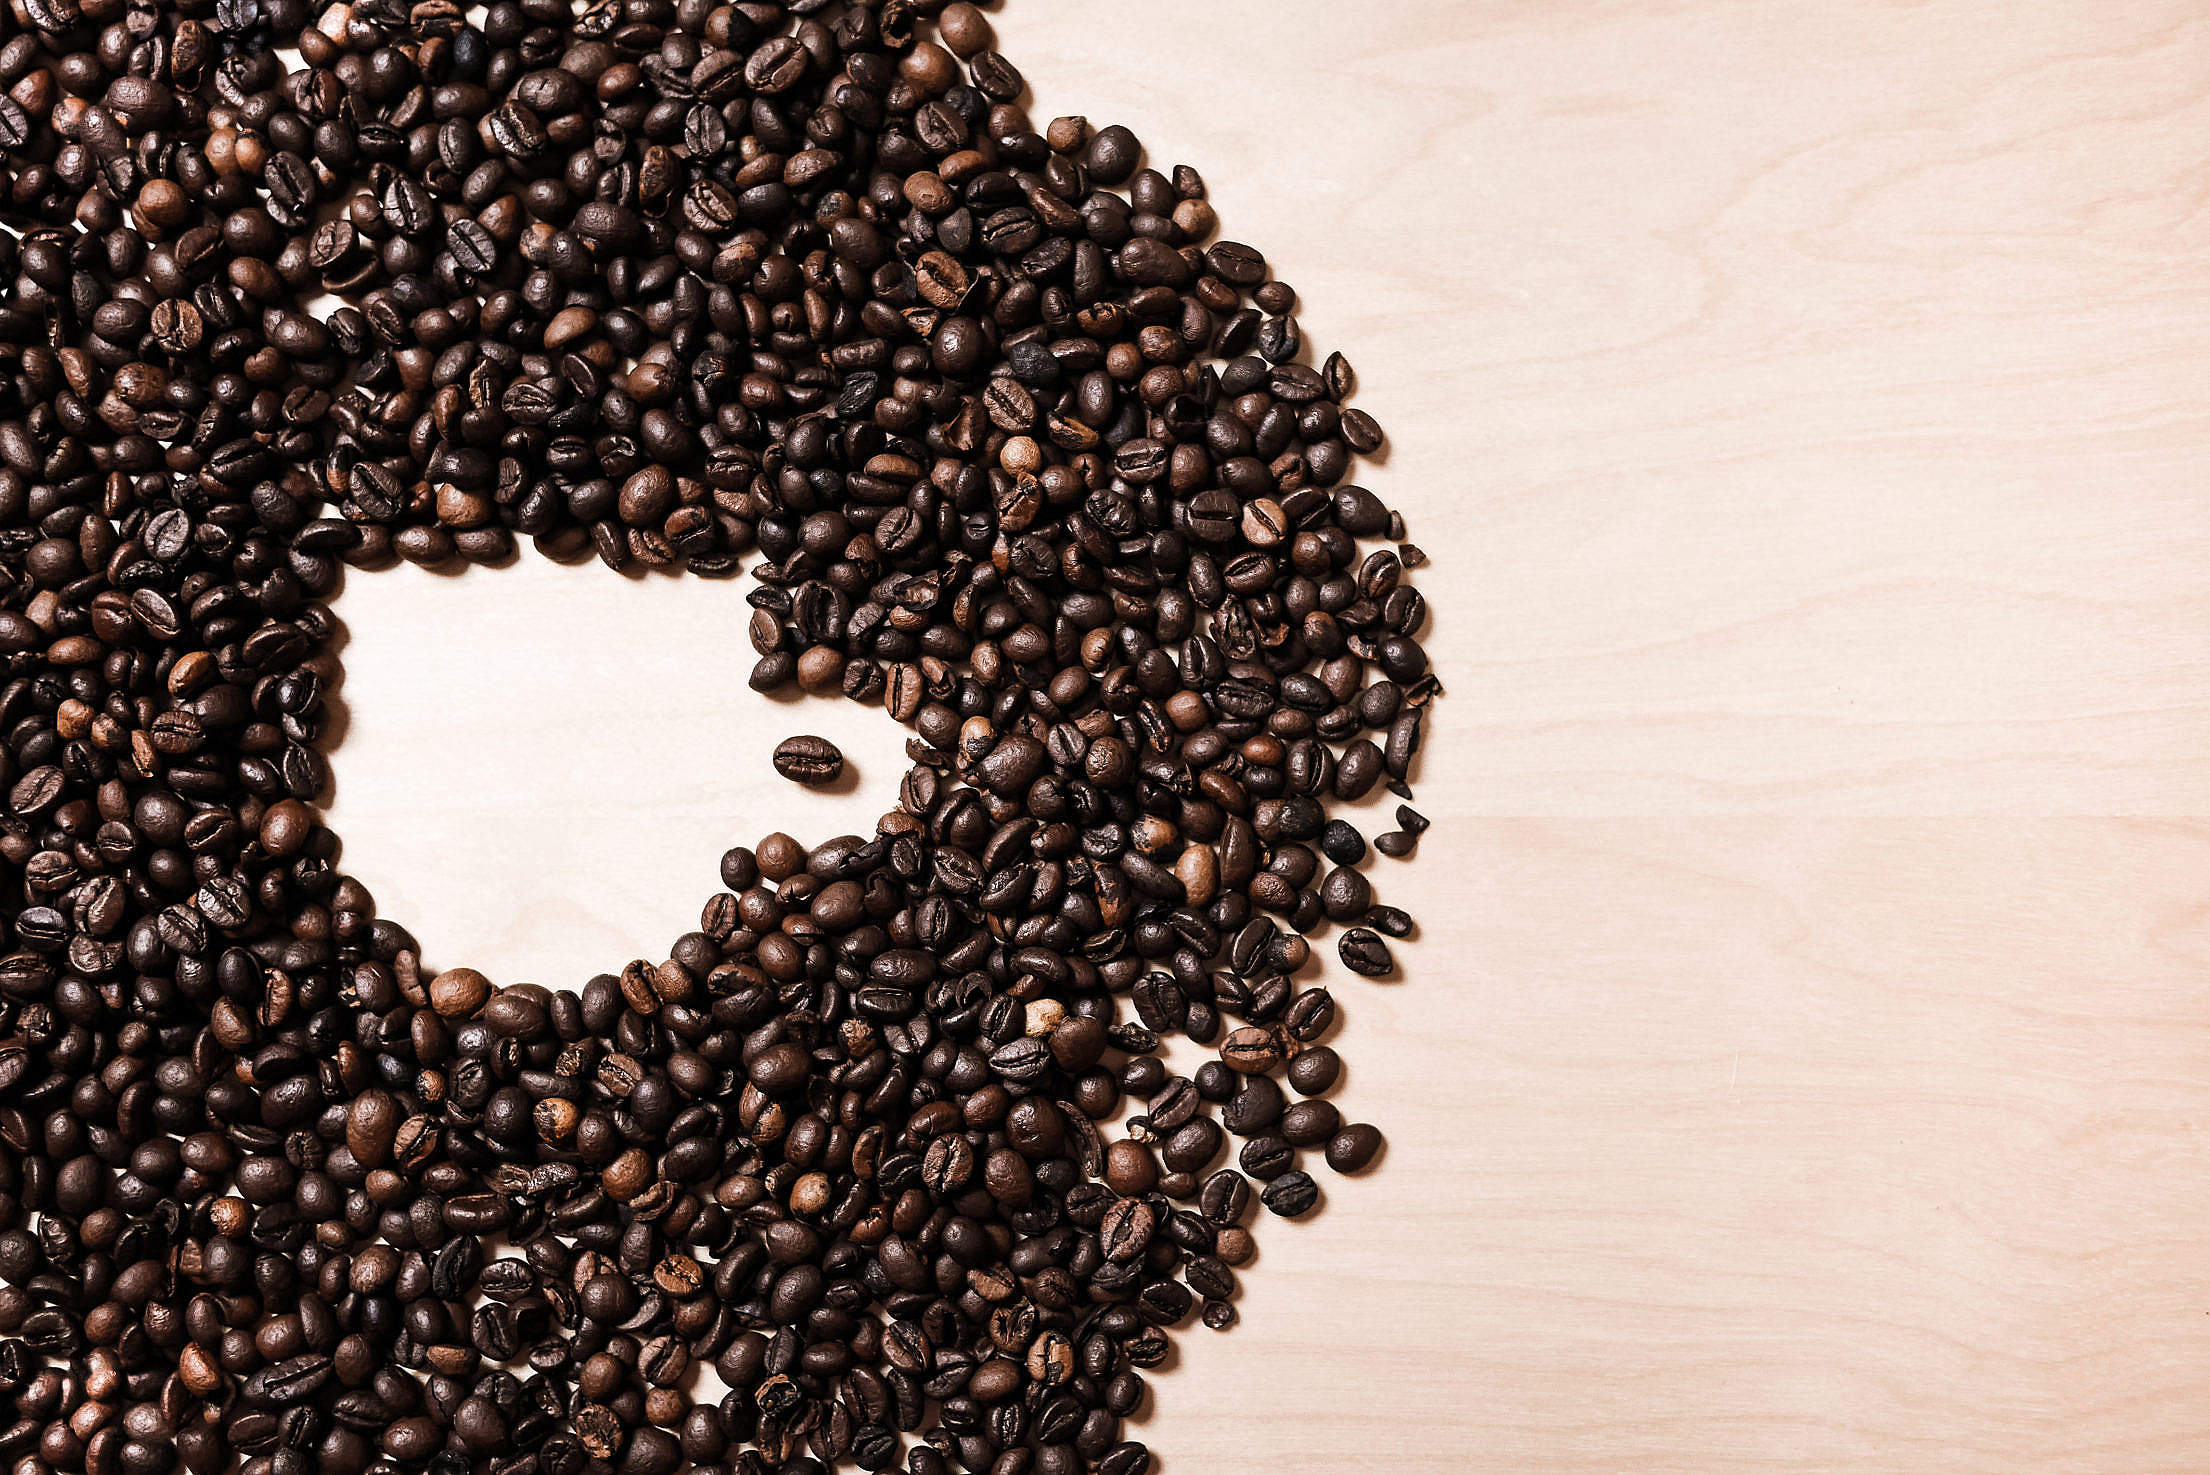 Coffee Cup Shape in Coffee Beans #2 Free Stock Photo